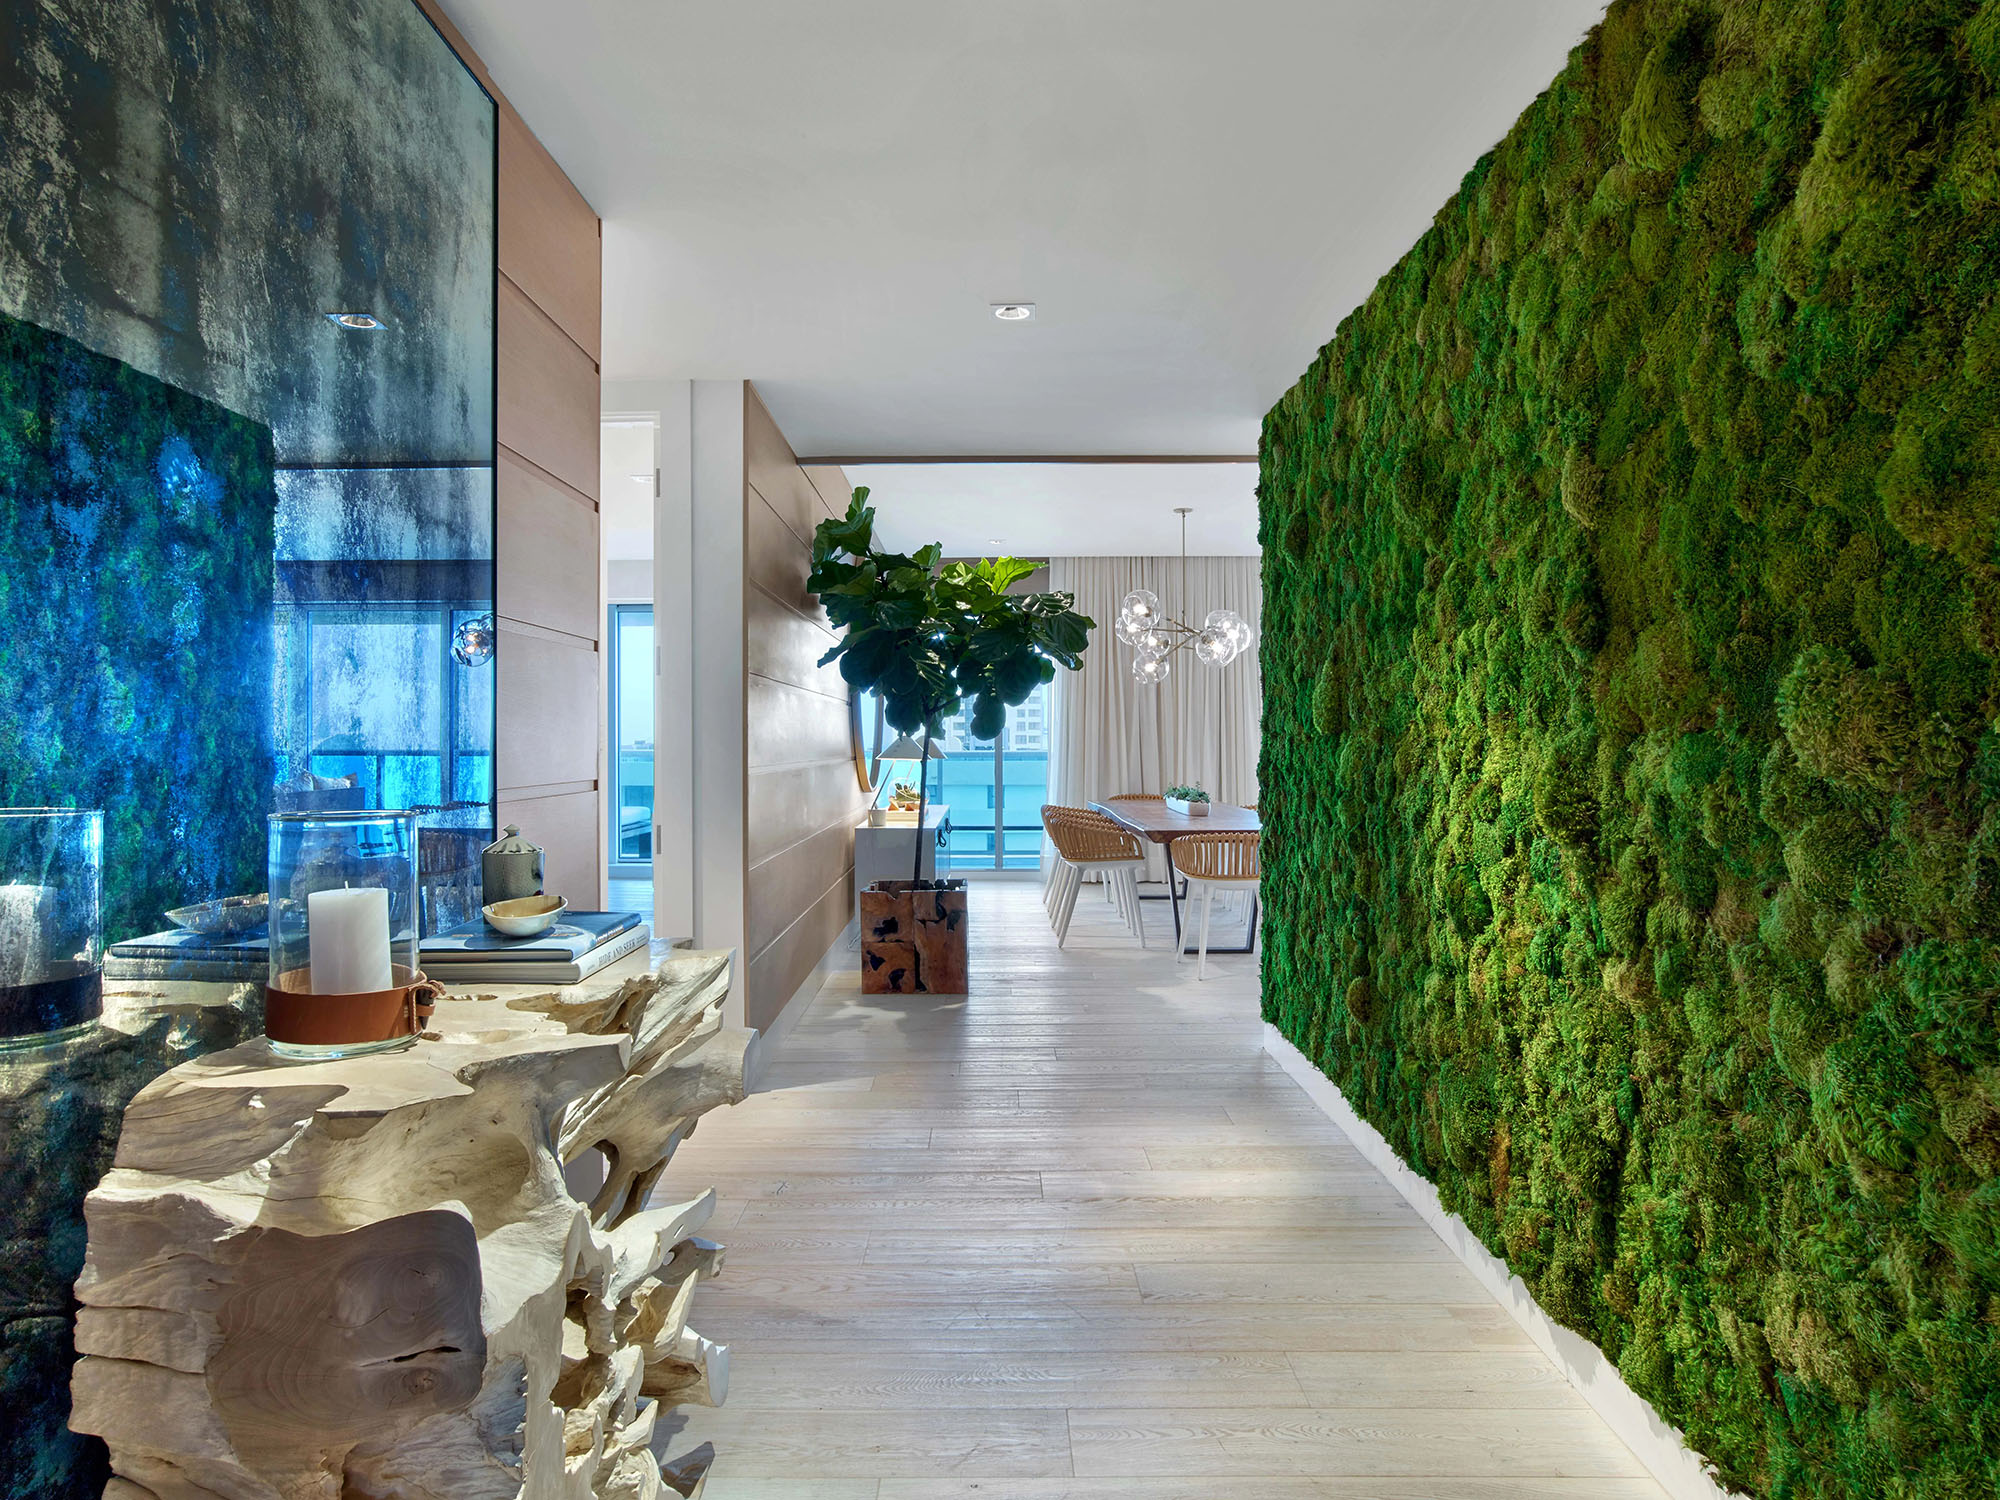 Interior living plant wall made from moss.